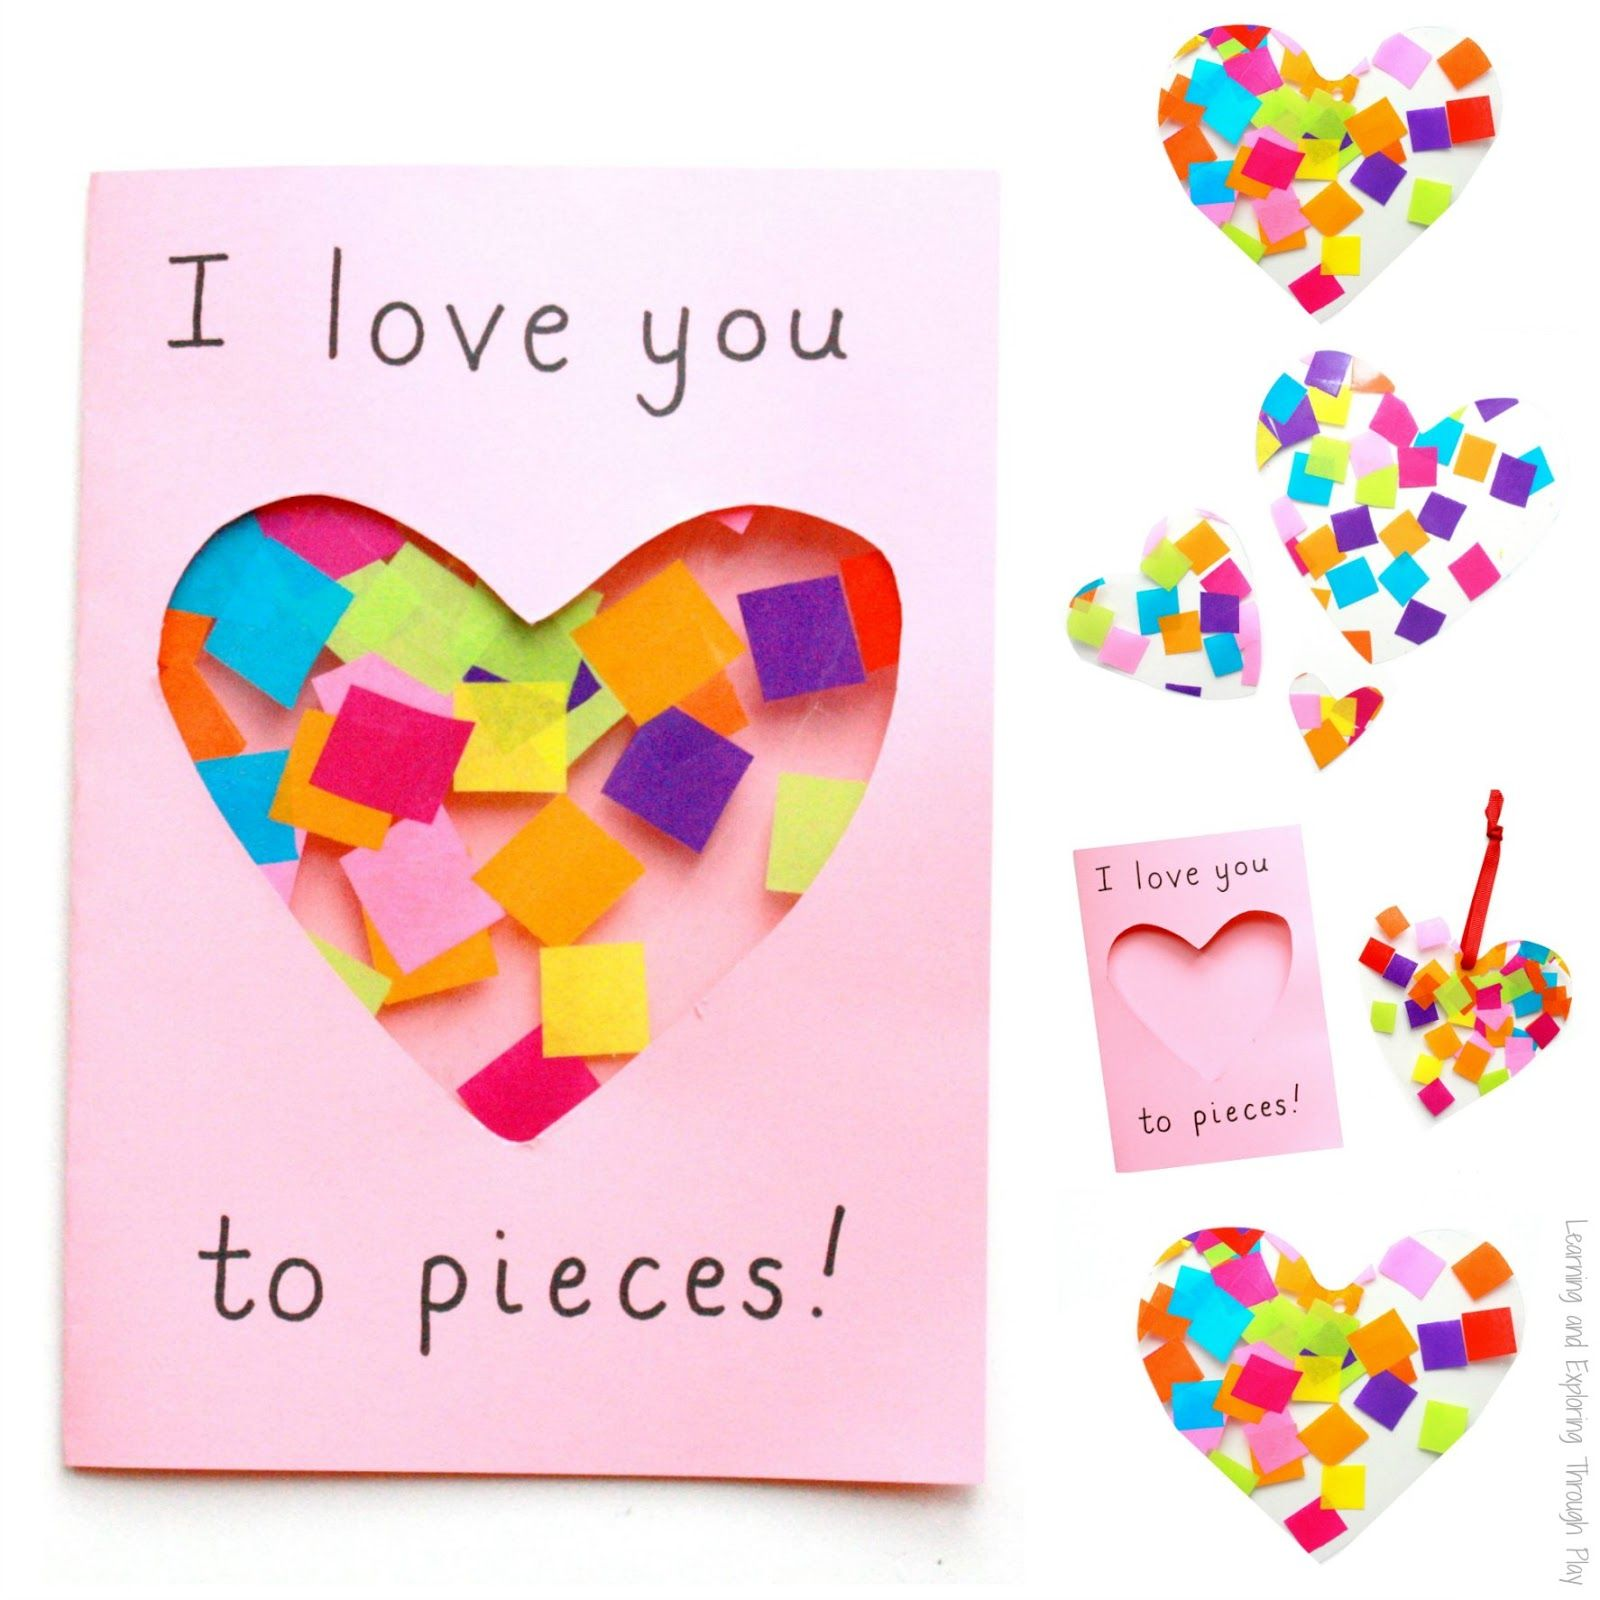 Love you to pieces suncatcher card craft activities and for Mother s day projects for preschoolers